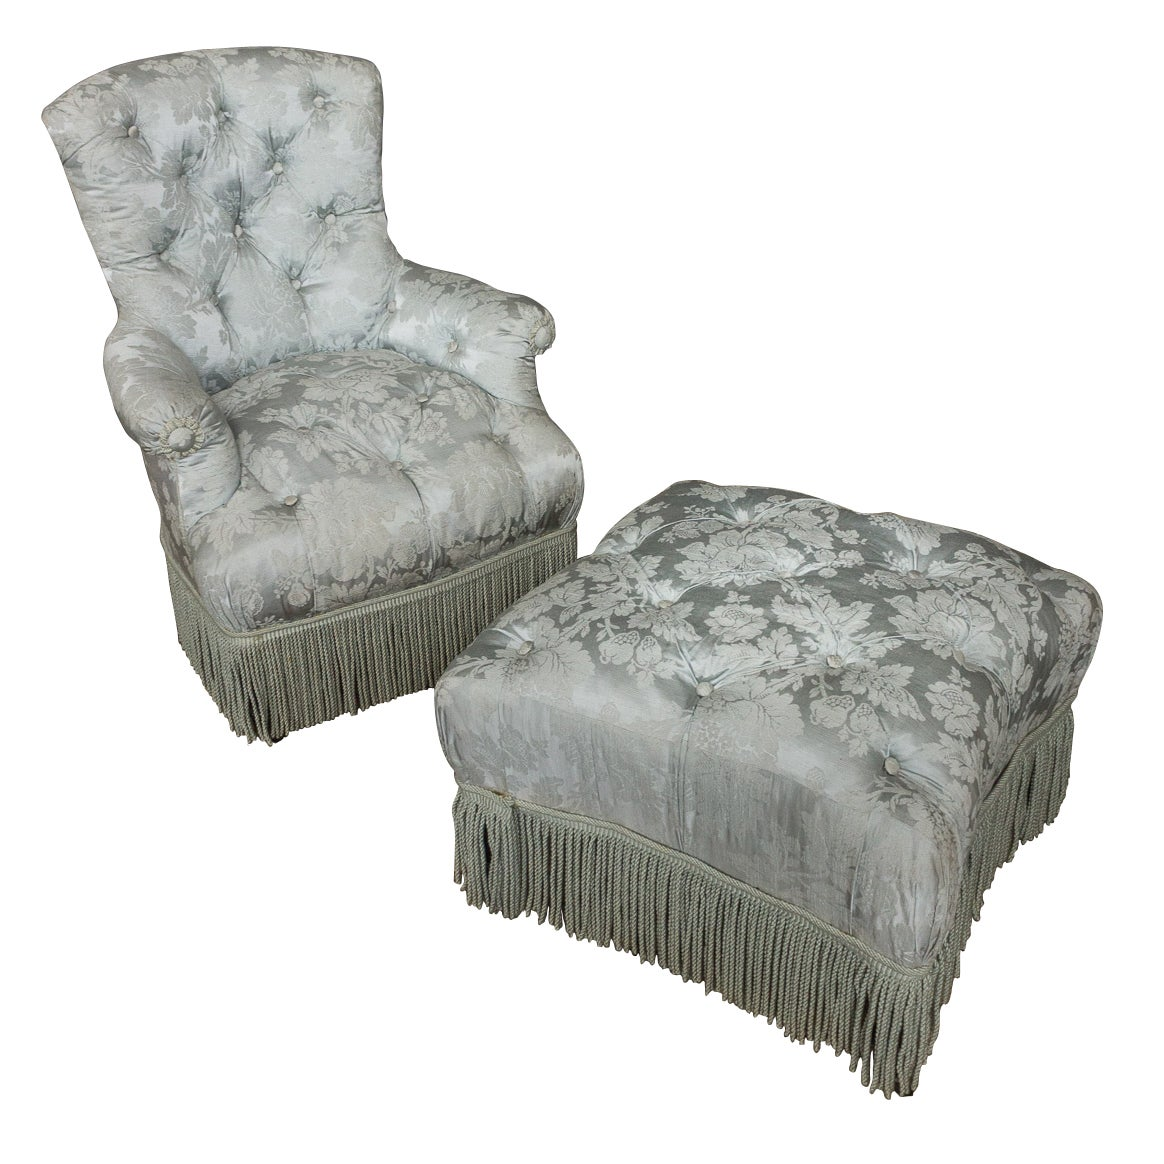 French 19th Century Tufted Armchair and Ottoman